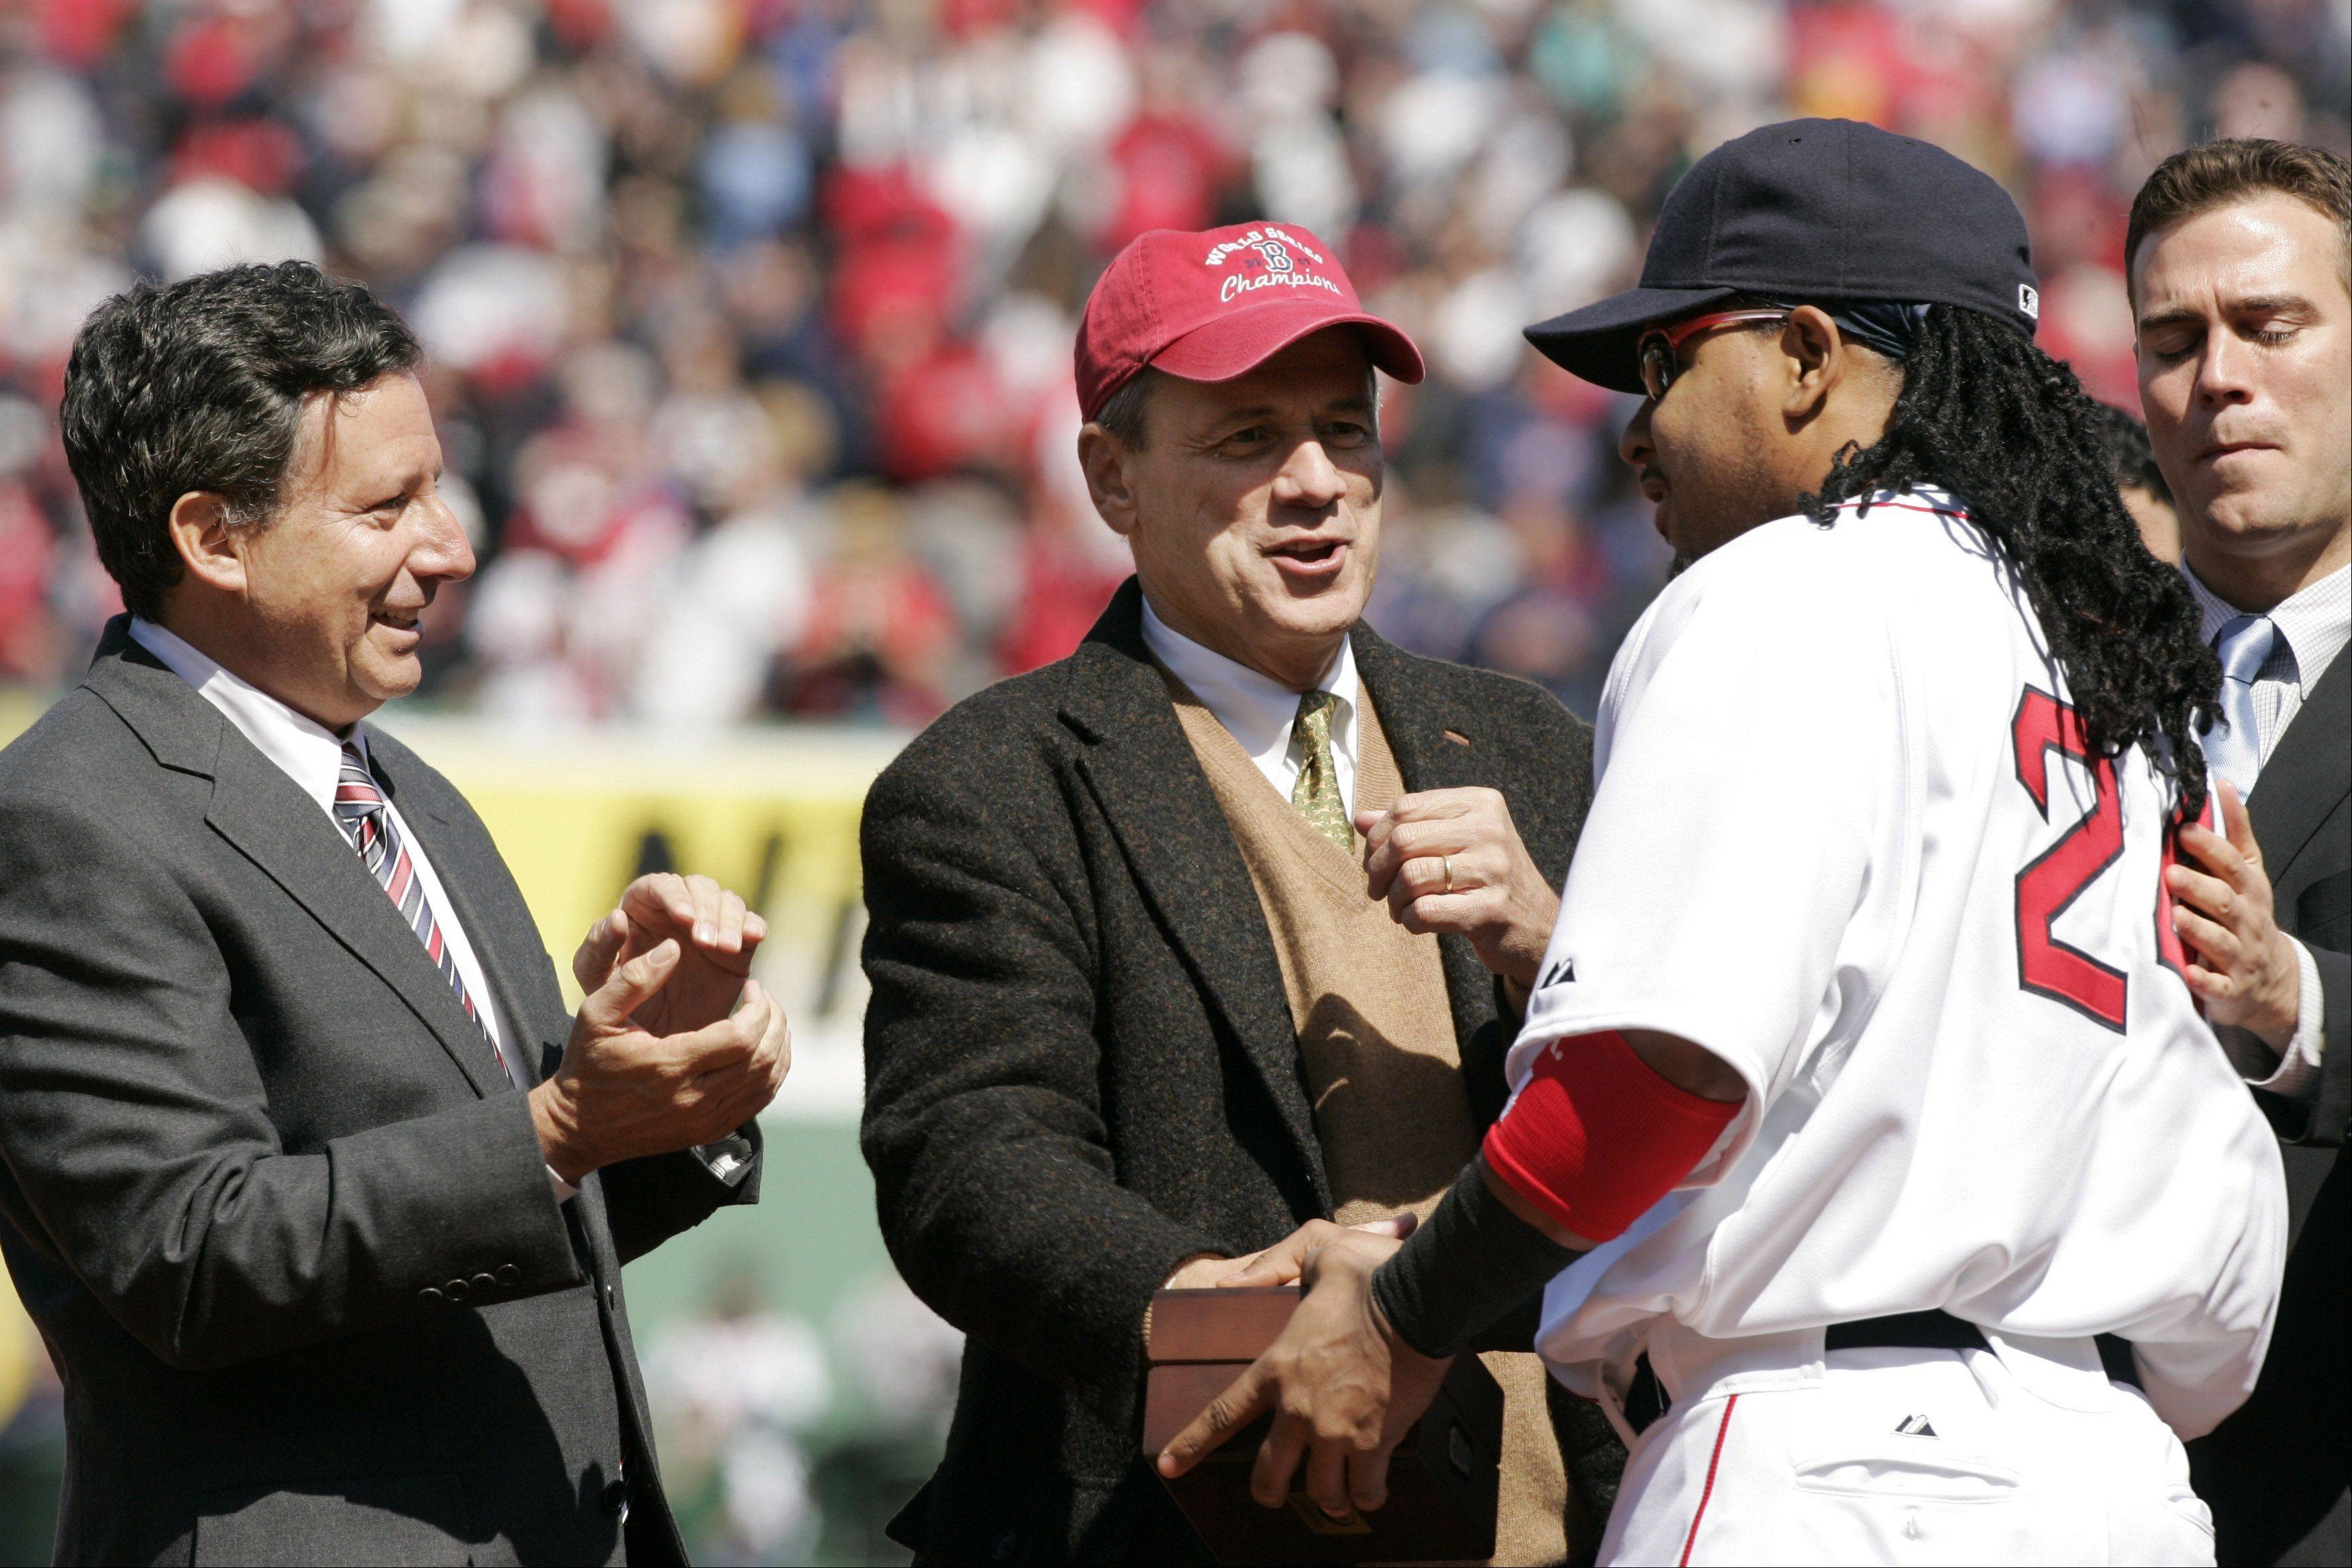 Boston Red Sox's Manny Ramirez, second from right, is present with a world championship ring by, from left, team Chairman and co-owner Tom Werner, team President and CEO Larry Lucchino, and general manager Theo Epstein during ceremonies at the baseball team's homer opener at Boston's Fenway Park, Tuesday, April 8, 2008. The Red Sox played the Detroit Tigers in the game.